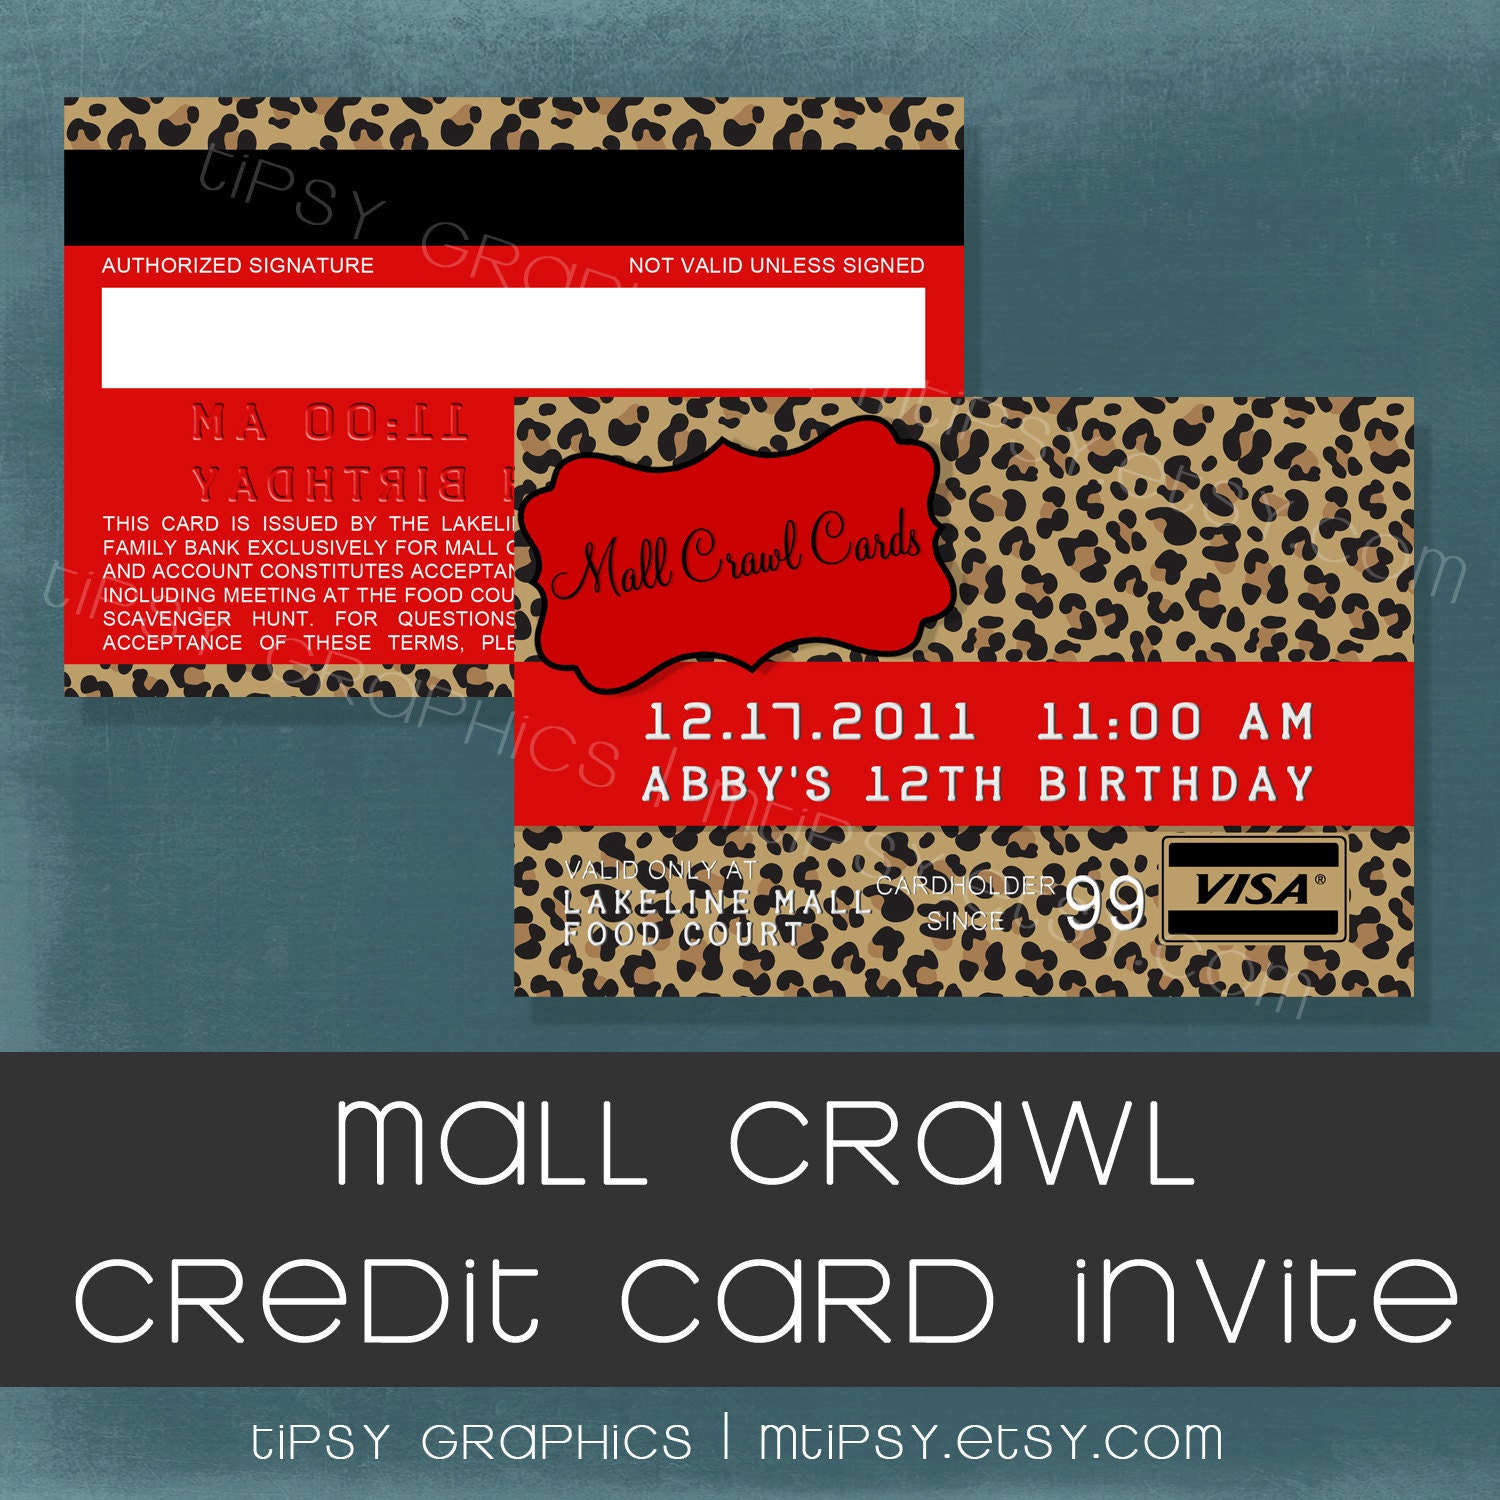 Receipt Examples Templates Word Chic Leopard Print Mall Crawl Credit Card Invite Front And Proforma Invoice Word Pdf with Sample Invoice Letter For Payment Word Zoom Best Invoicing Software For Freelancers Pdf